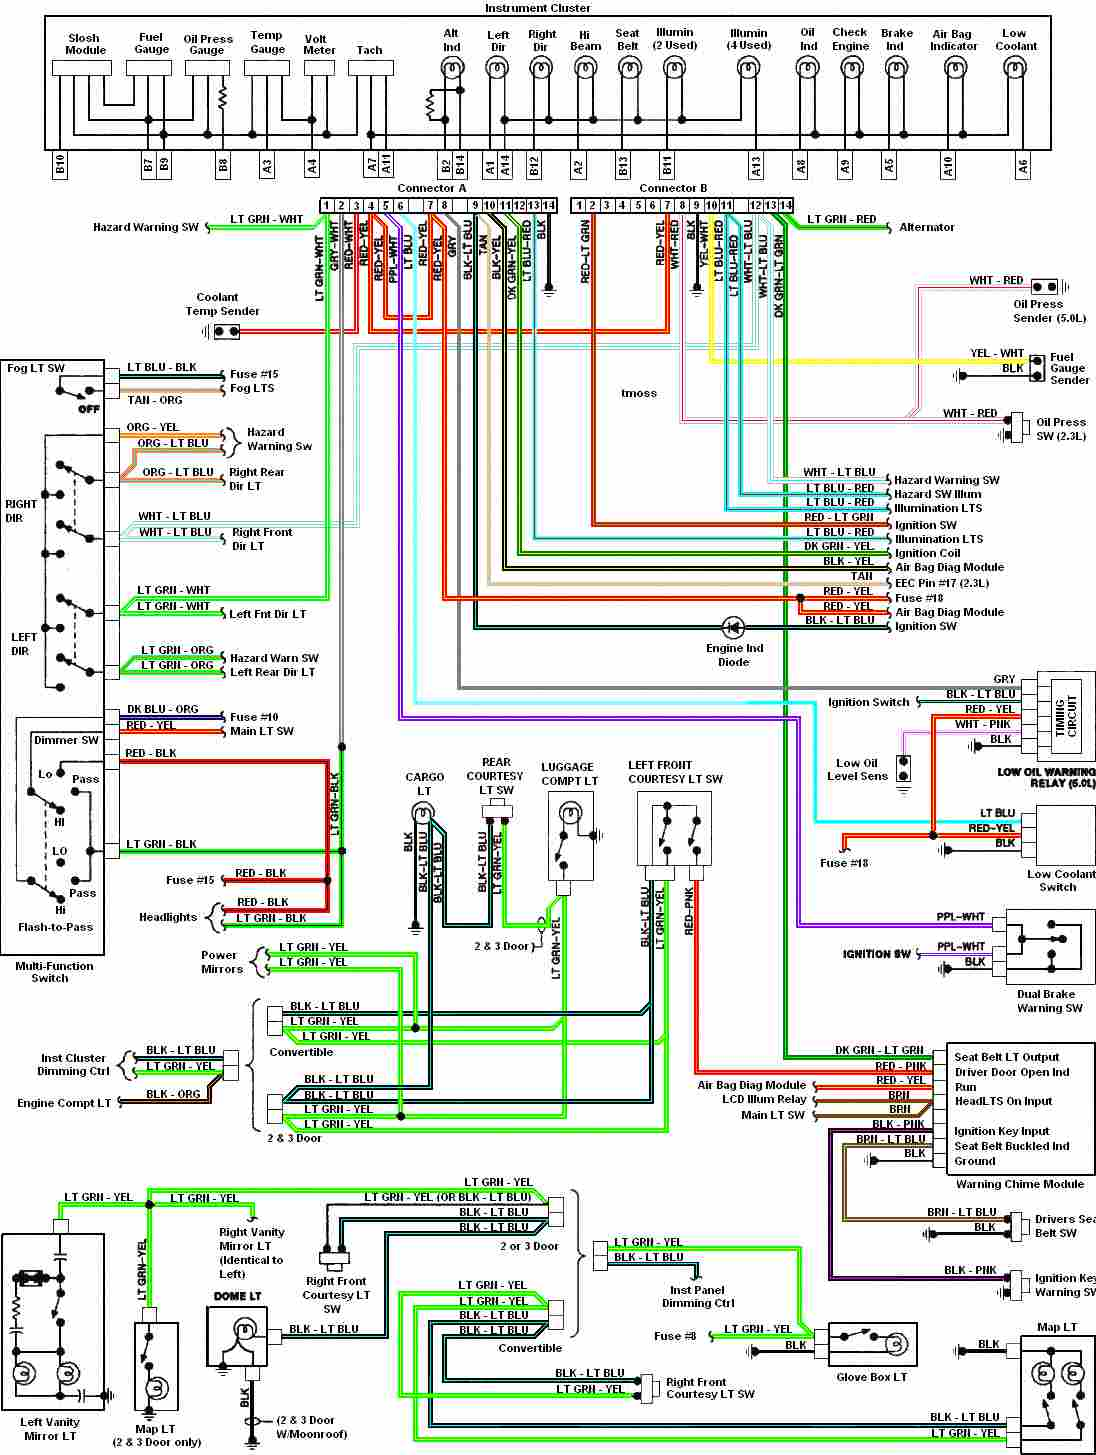 eclipse fuel gauge wiring diagram with 2005 Honda Jazz Headlight Wiring Diagram on 3000gt Fuel Filter Gauge besides 2013 Honda Pilot Undercarriage Diagram likewise 2013 06 01 archive furthermore Chevy Starter Wiring Diagram Rotary Phase Honda additionally 94 Toyota Camry Ignition Switch Wiring Diagram.